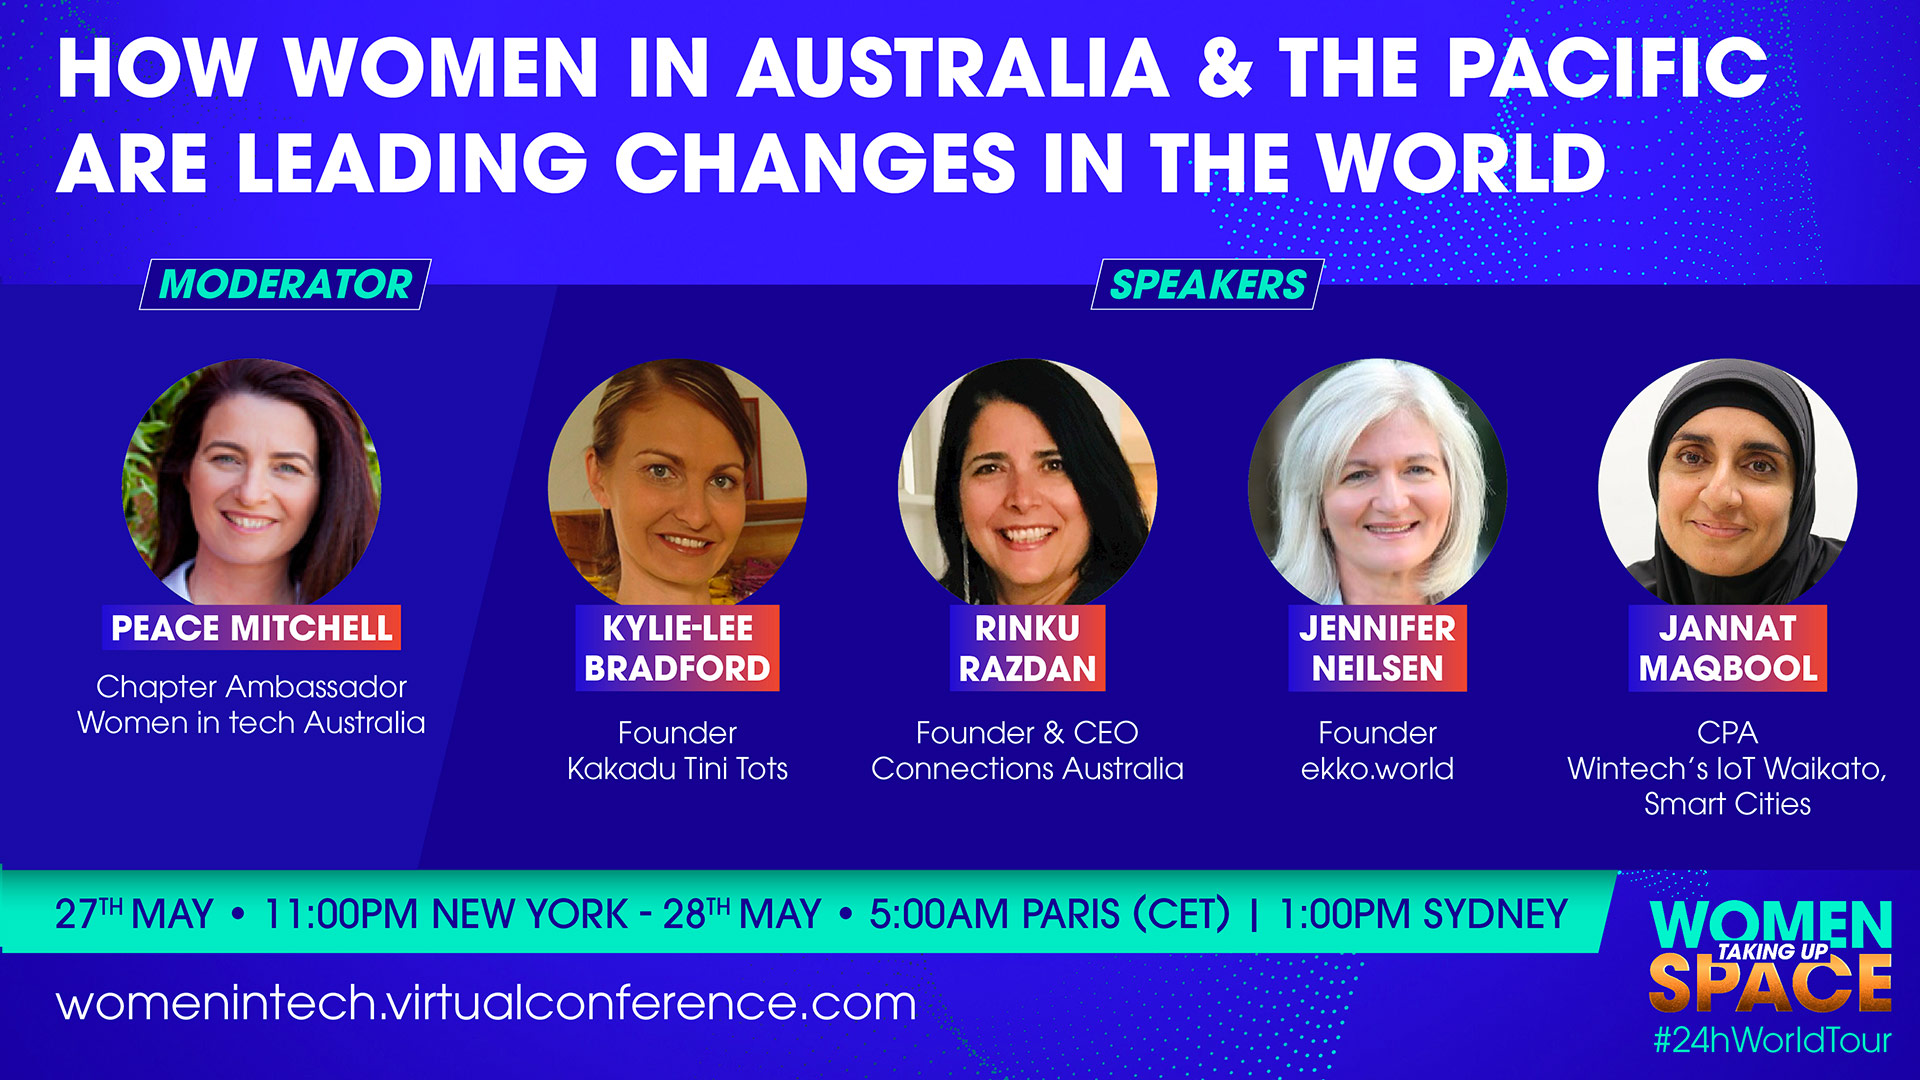 How Women in Australia & the Pacific are leading changes in the world